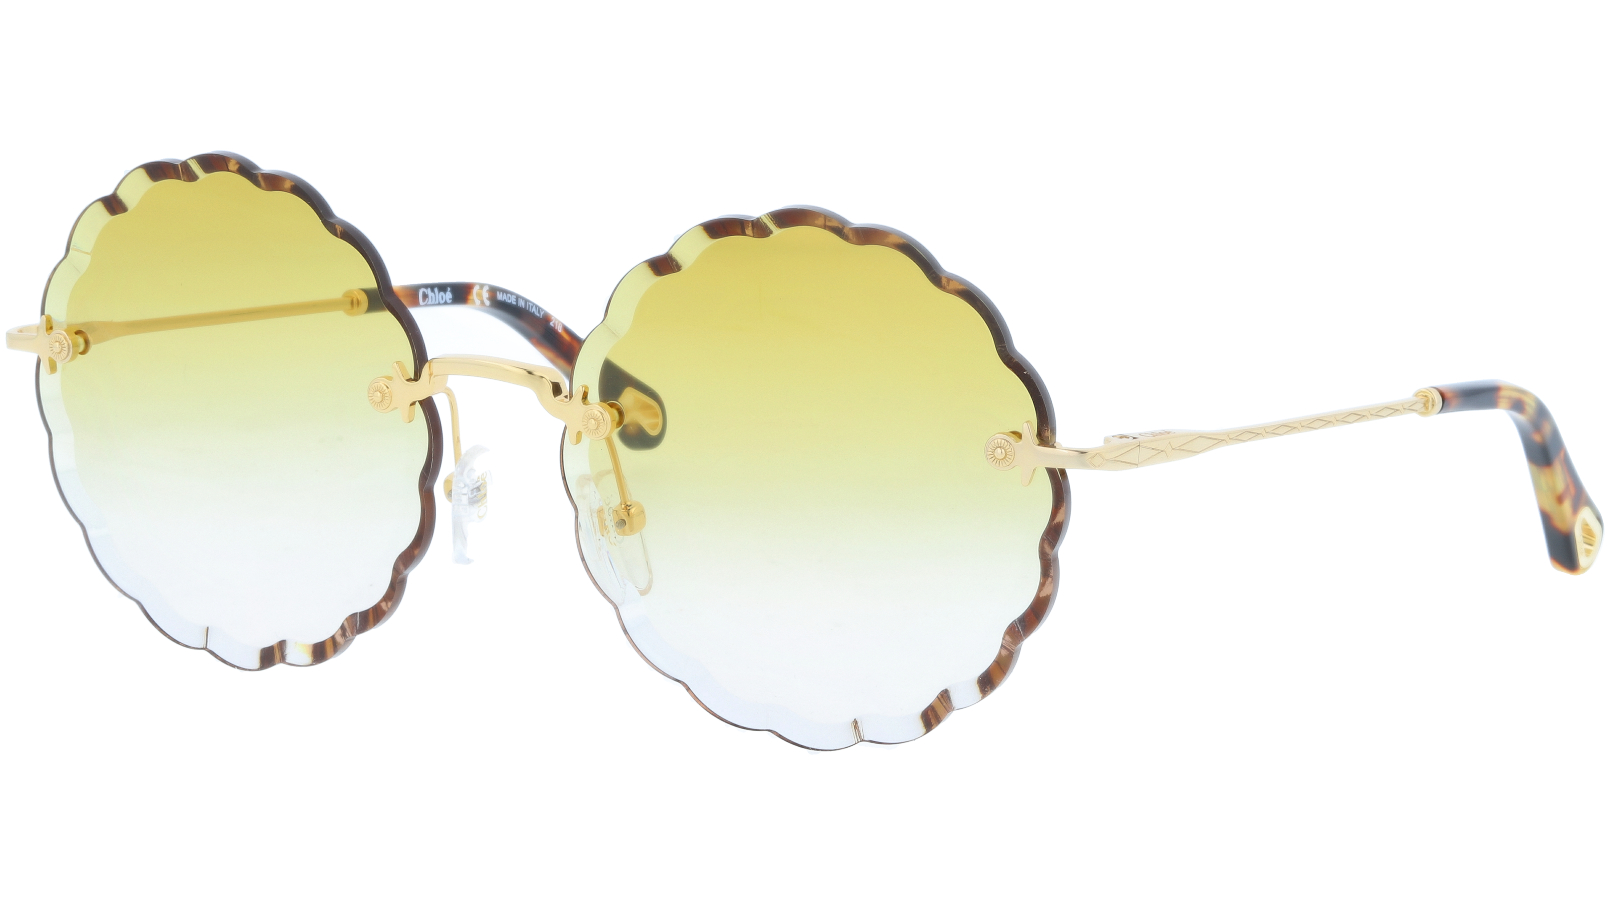 CHLOE CE142S 816 60 Gold Blue Round Sunglasses